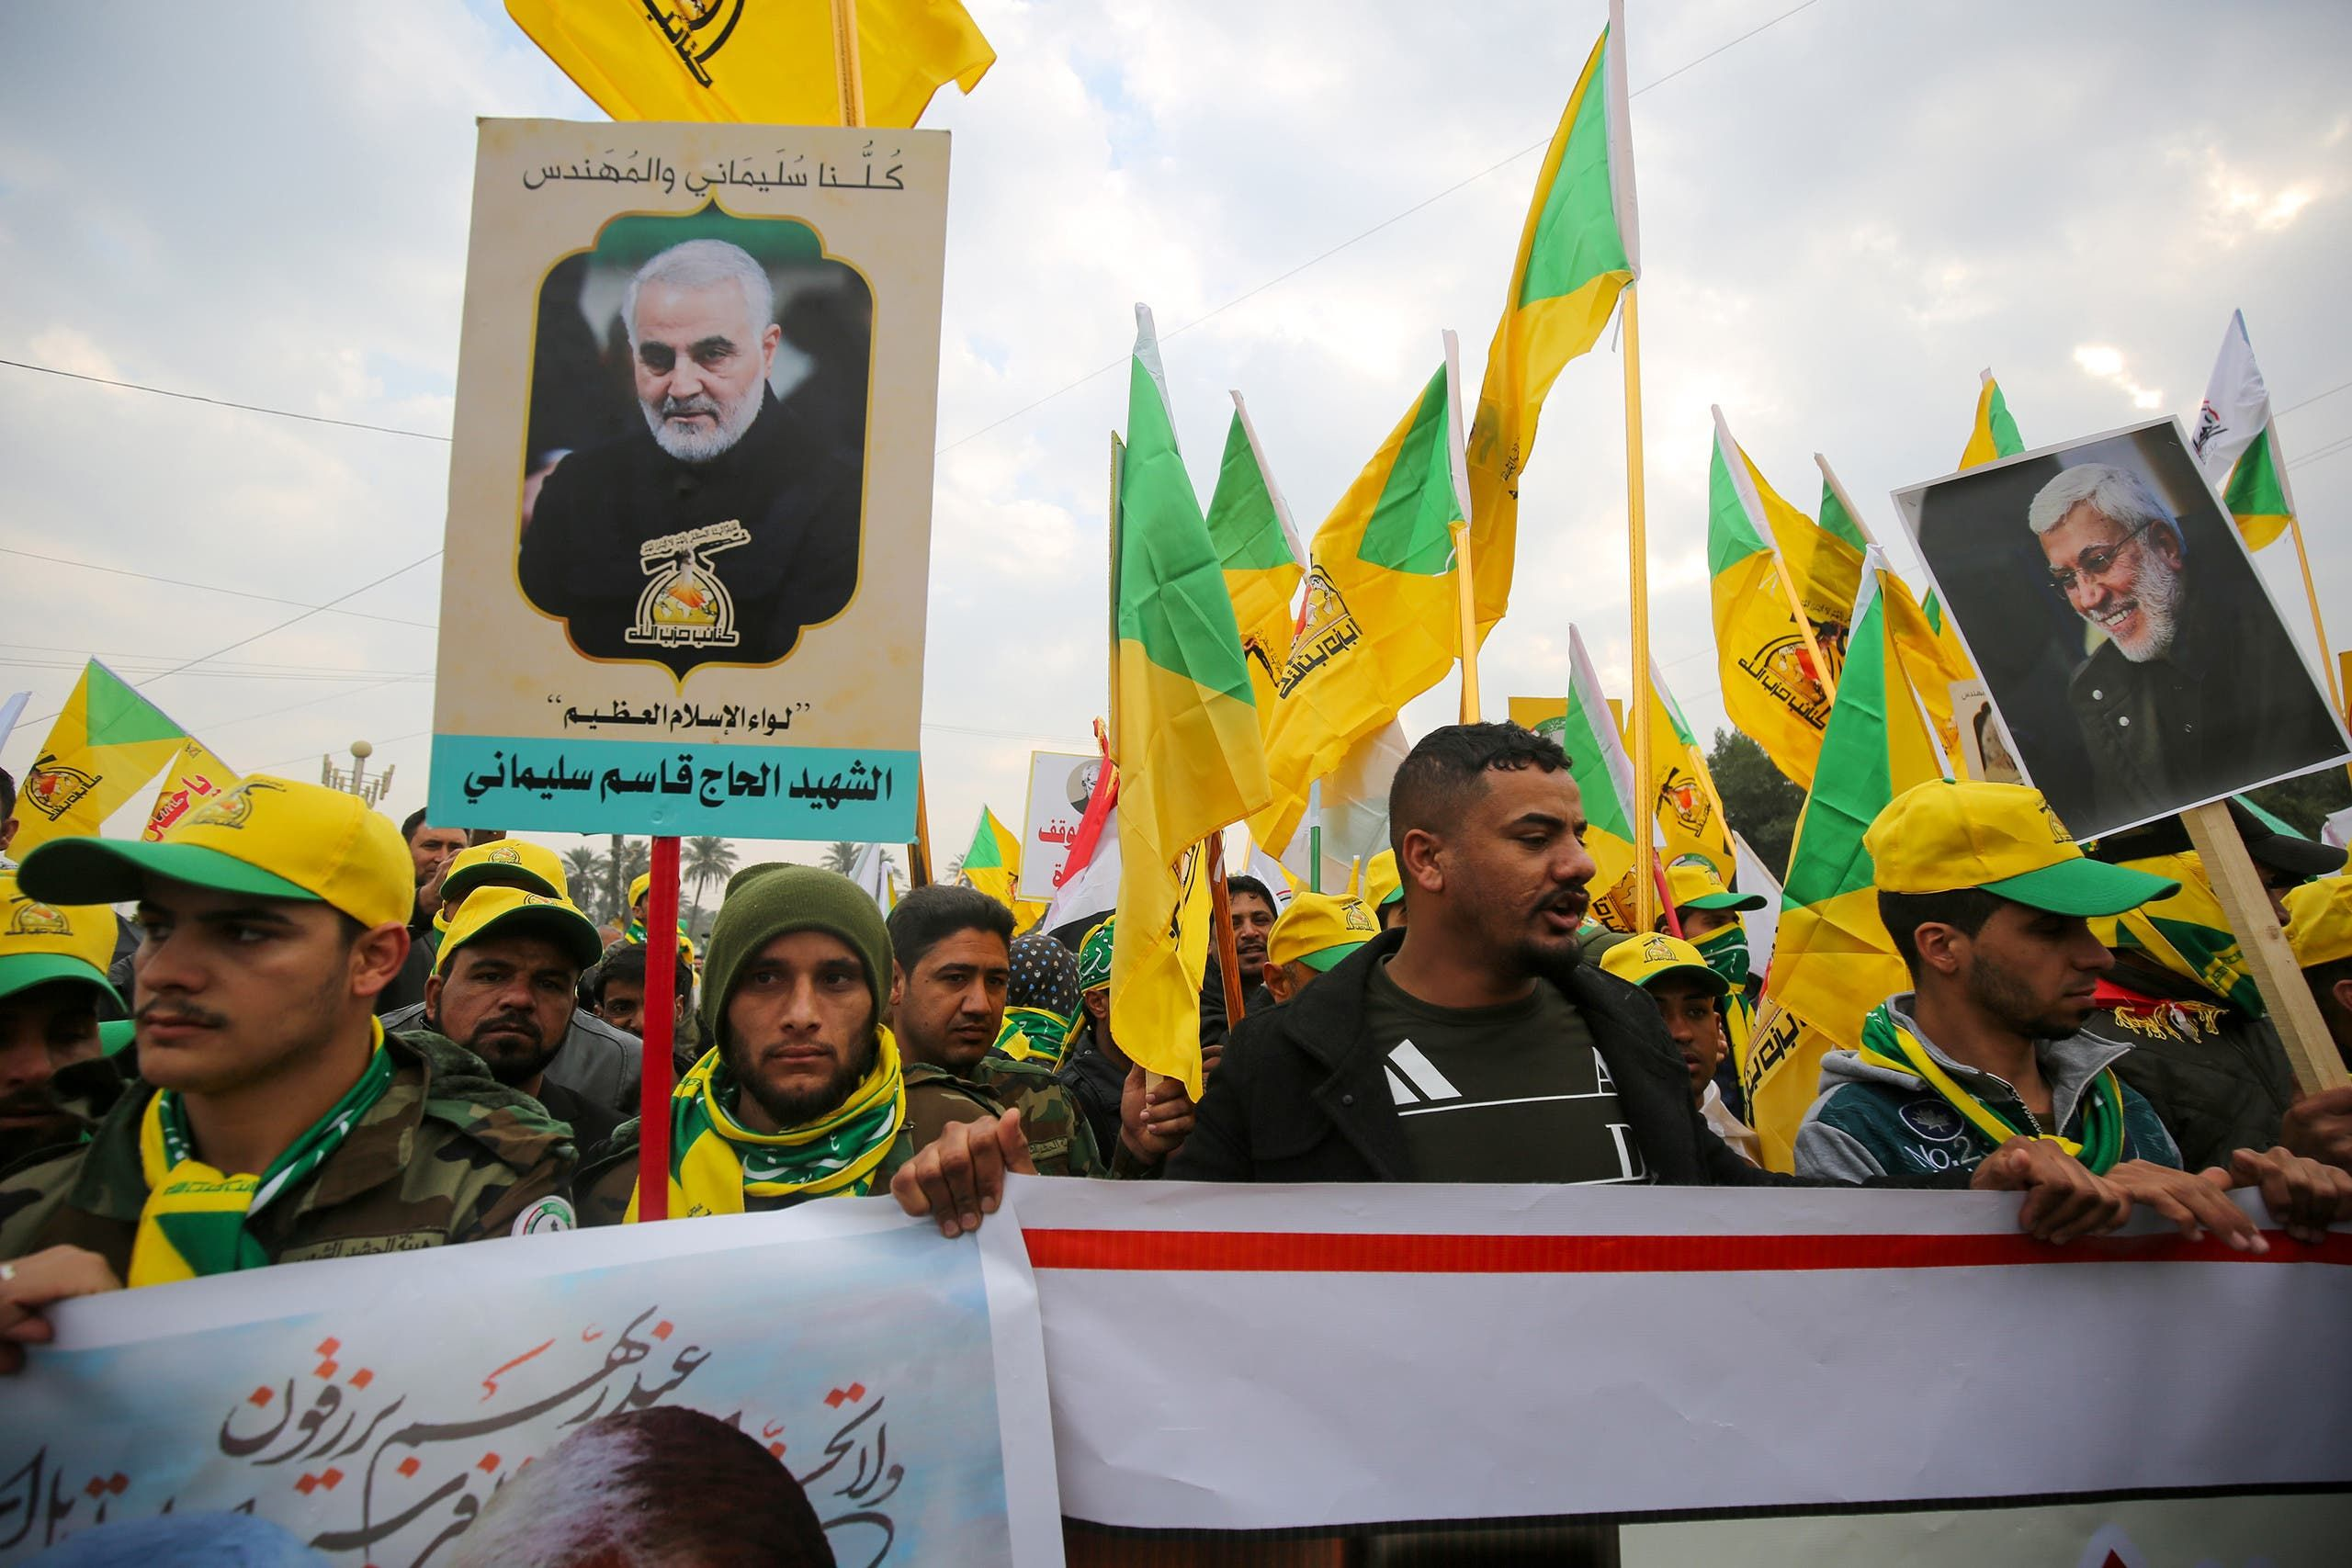 Supporters of the Hashed al-Shaabi paramilitary force and Iraq's Hezbollah brigades attend the funeral of Iranian military commander Qasem Soleimani (portrait) and Iraqi paramilitary chief Abu Mahdi al-Muhandis (portrait) in Baghdad's district of al-Jadriya, in Baghdad's high-security Green Zone, on January 4, 2020. Thousands of Iraqis chanting Death to America joined the funeral procession for Iranian commander Qassem Soleimani and Iraqi paramilitary chief Abu Mahdi al-Muhandis, both killed in a US air strike. The cortege set off around Kadhimiya, a Shiite pilgrimage district of Baghdad, before heading to the Green Zone government and diplomatic district where a state funeral was to be held attended by top dignitaries. In all, 10 people -- five Iraqis and five Iranians -- were killed in Friday morning's US strike on their motorcade just outside Baghdad airport.